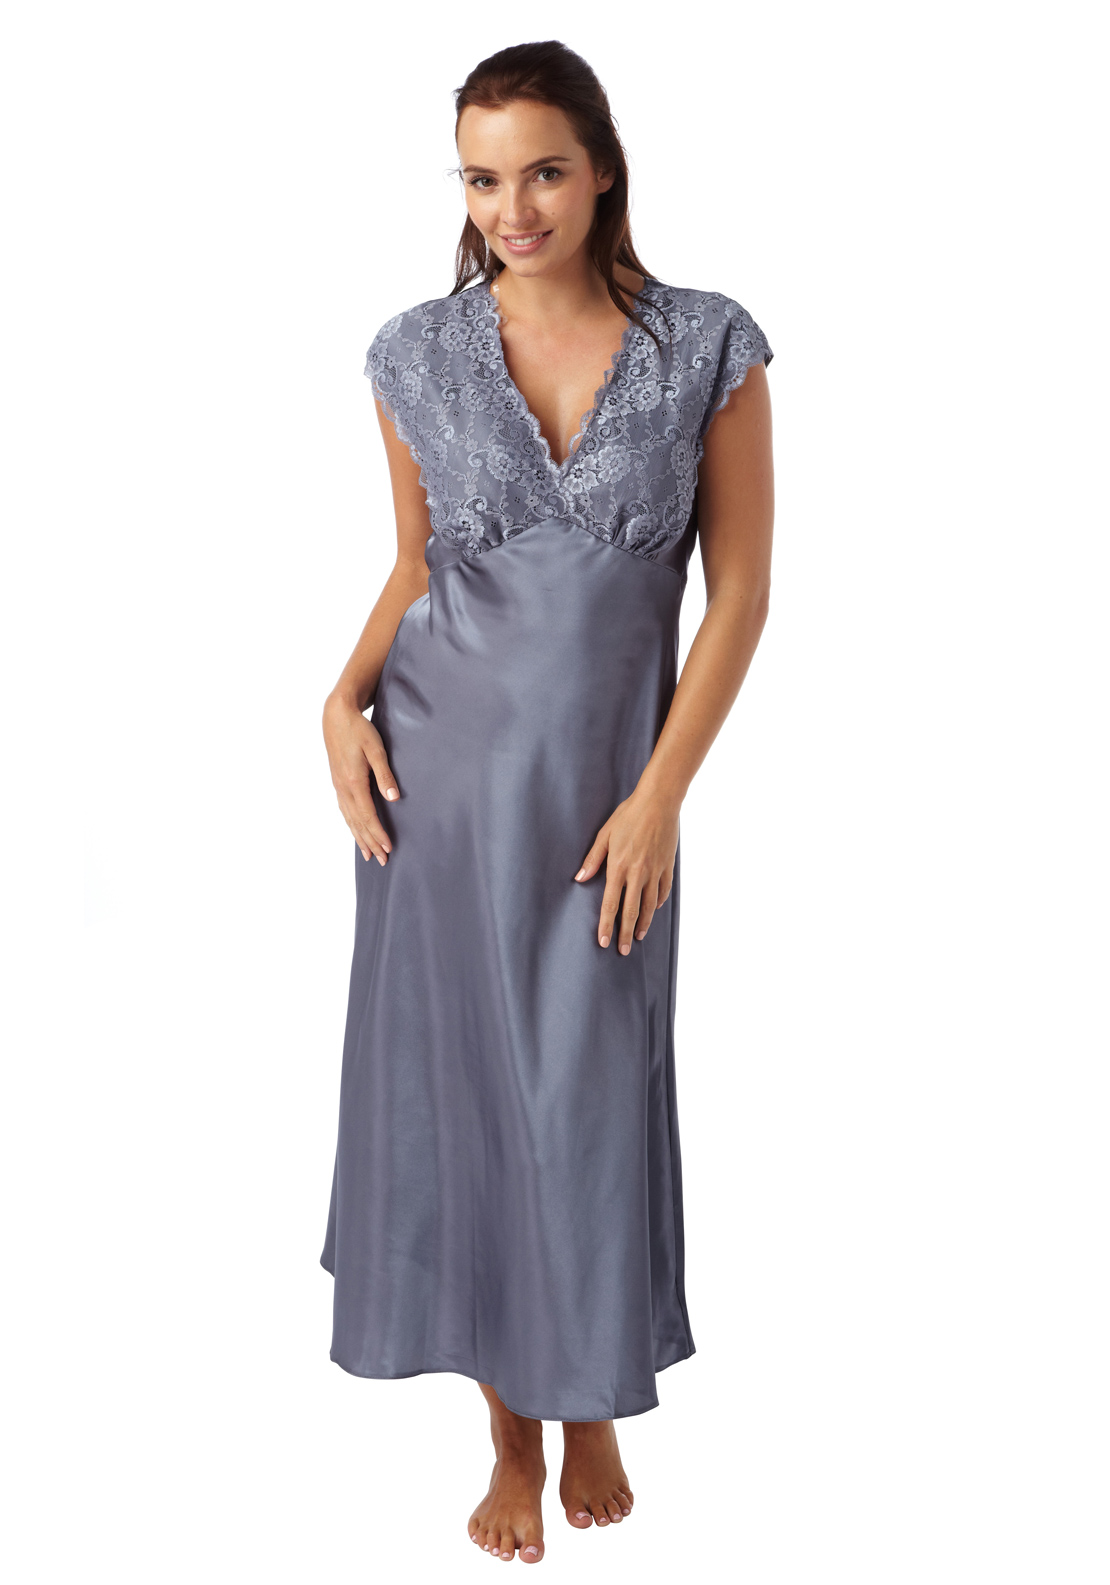 Indigo Sky Lace Trim Satin Nightdress, Charcoal